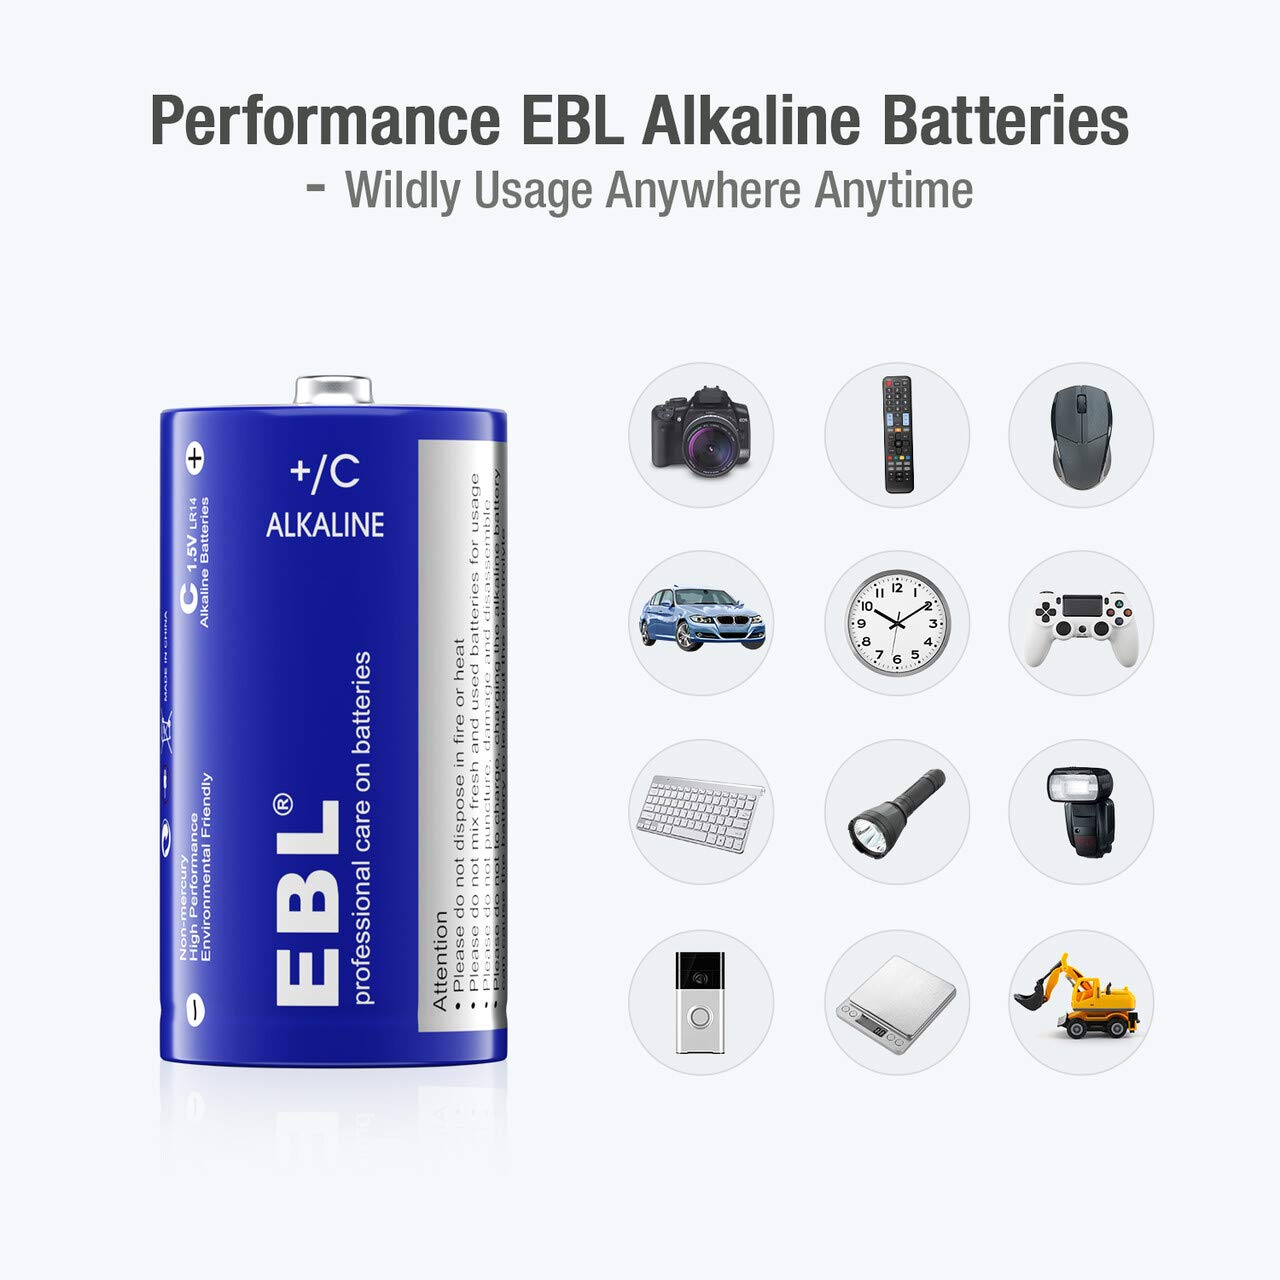 EBL C Batteries Alkaline C Cell Batteries - Alkaline Batteries Durable and Lasting Performance (8 Pack)